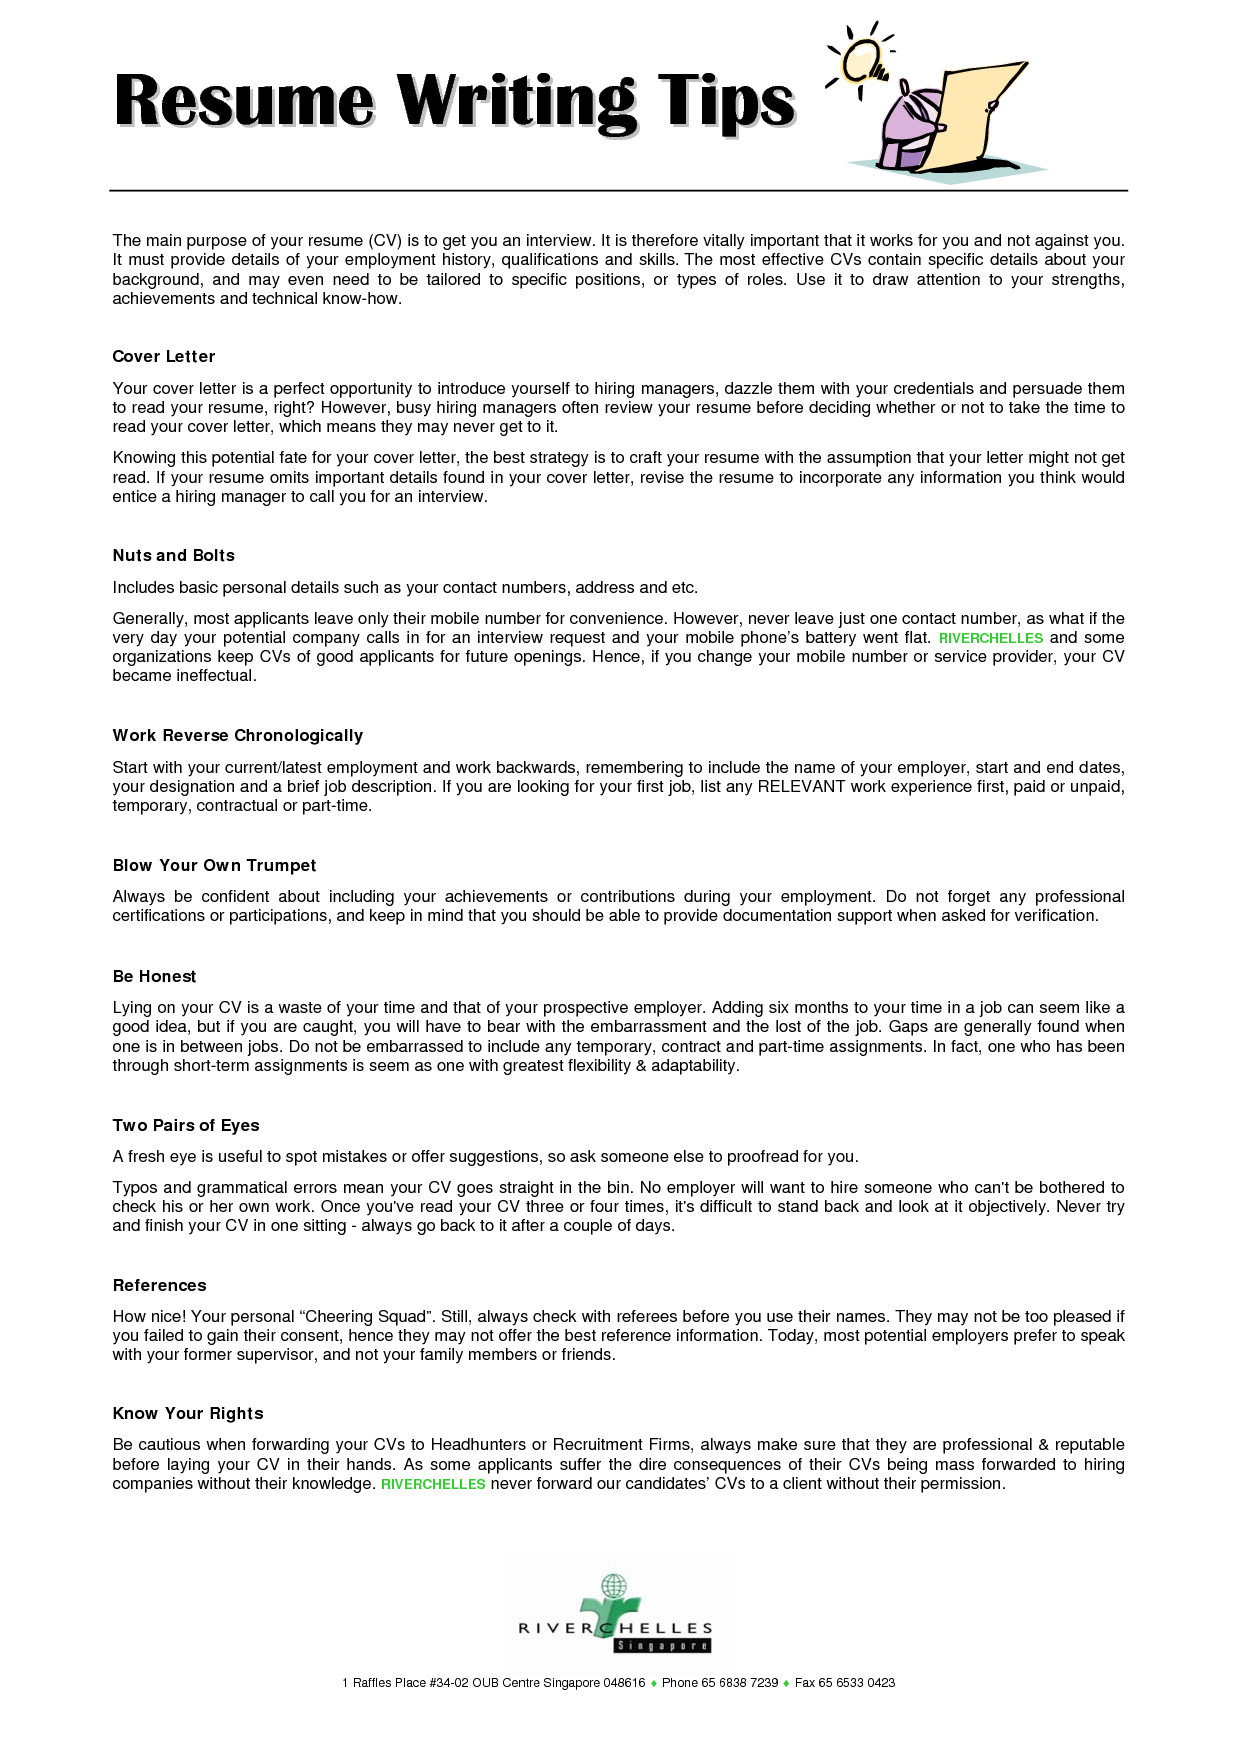 cover letter resume resume writing tips. Resume Example. Resume CV Cover Letter